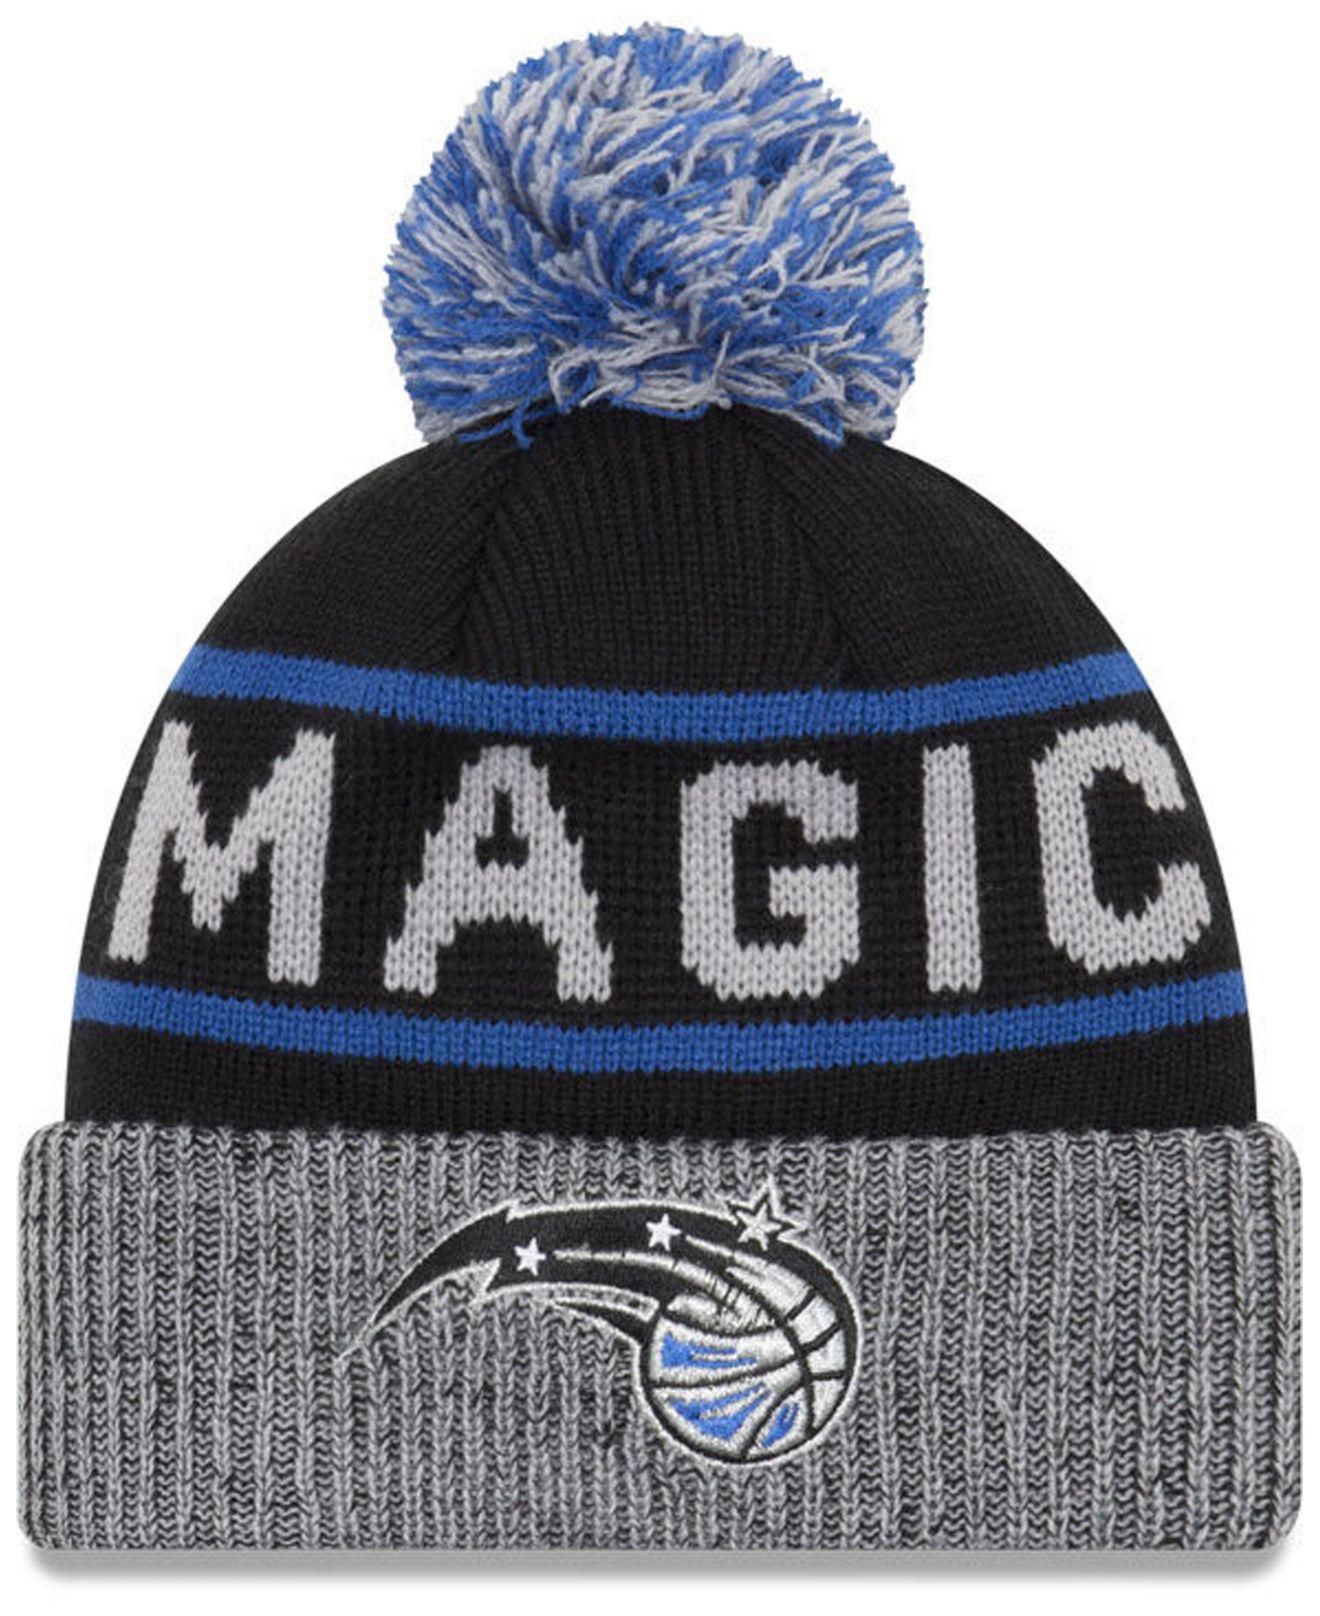 half off d8efe 209ec Lyst - Ktz Orlando Magic Court Force Pom Knit Hat in Black for Men